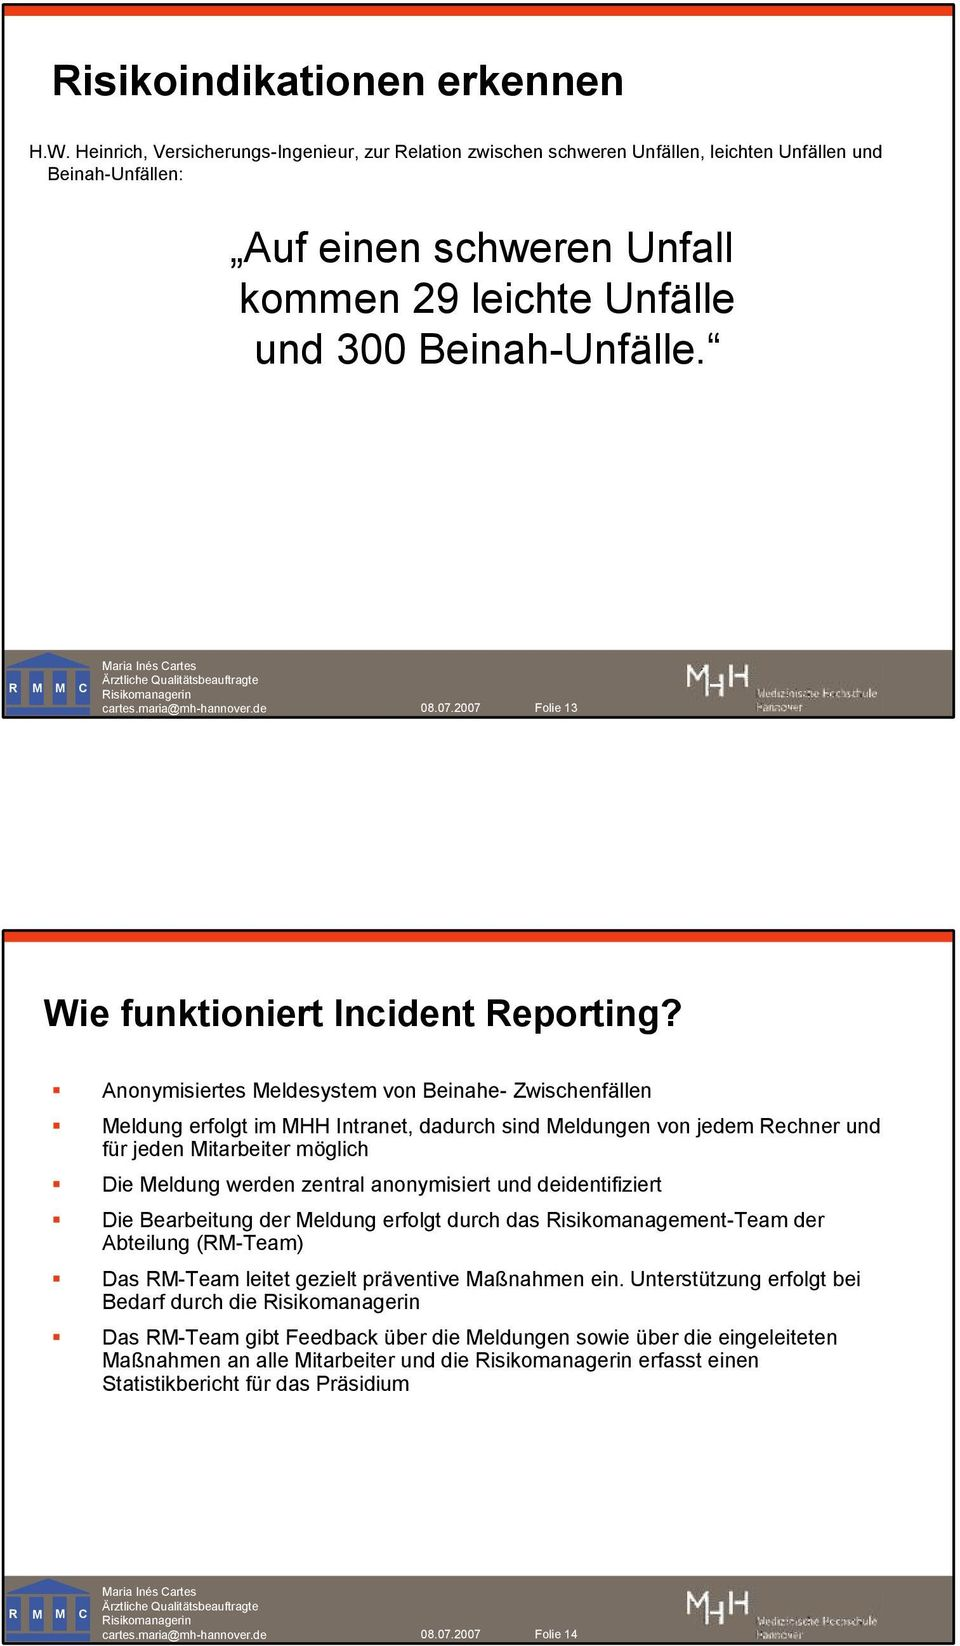 2007 Folie 13 Wie funktioniert Incident Reporting?